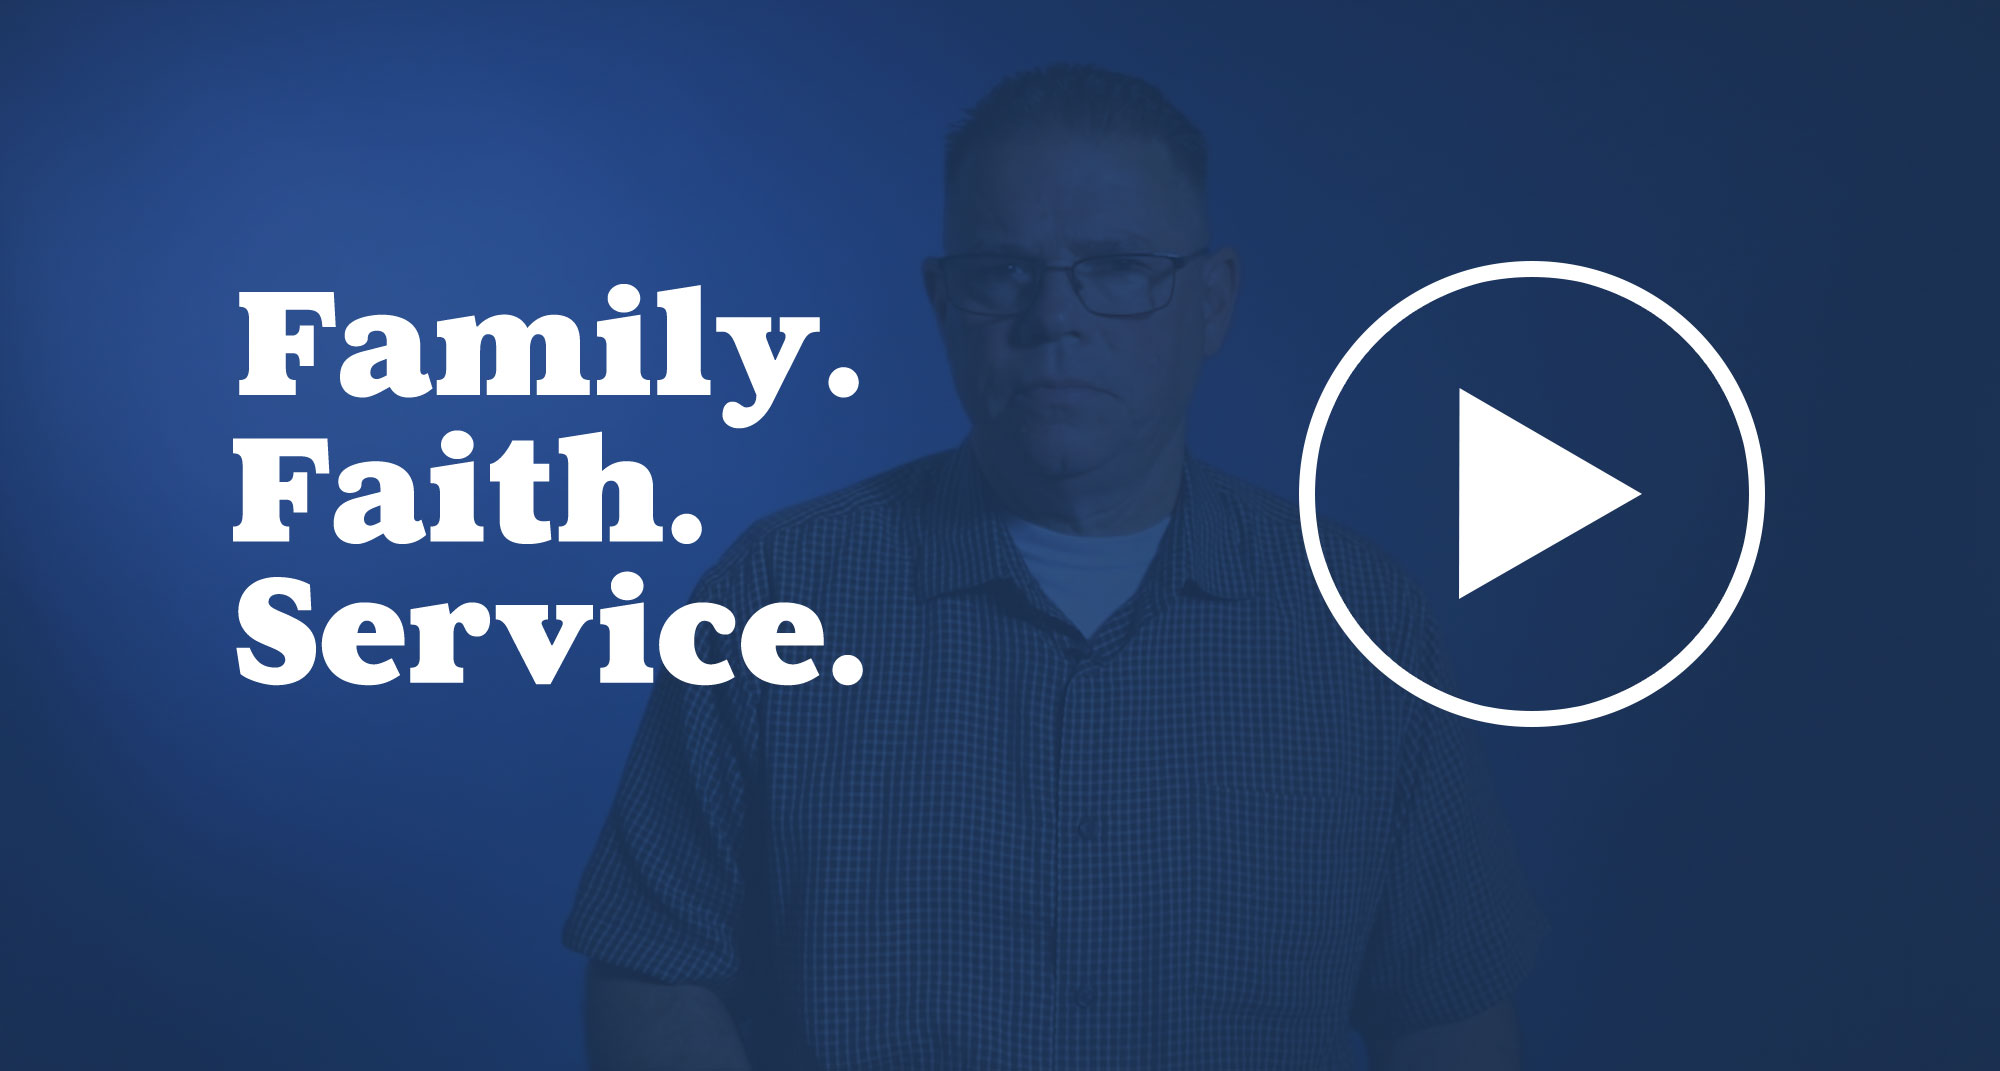 A video on family, faith, and service.